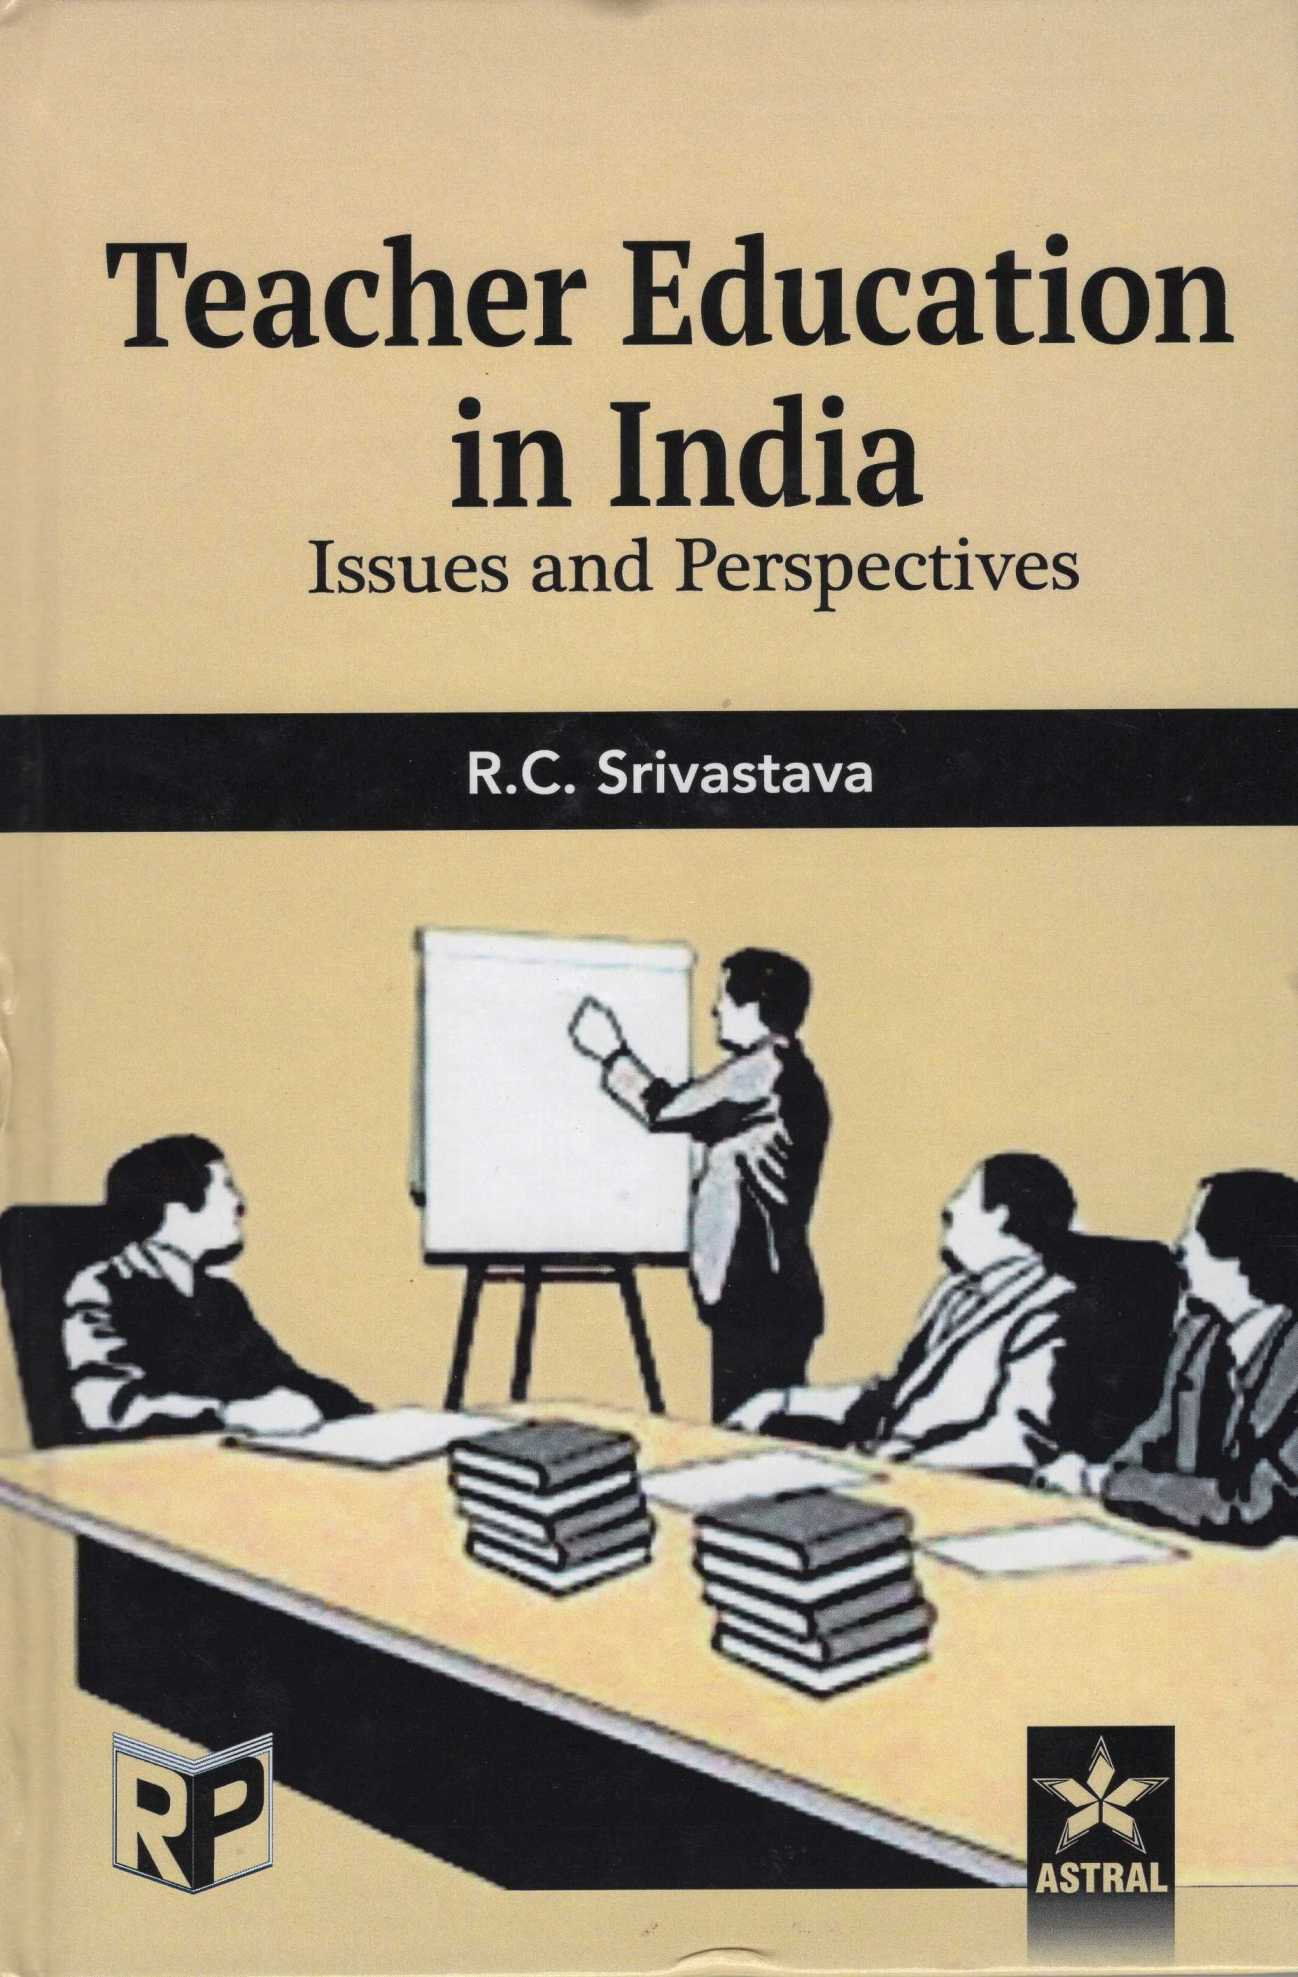 Teacher Education in India: Issues and Perspectives